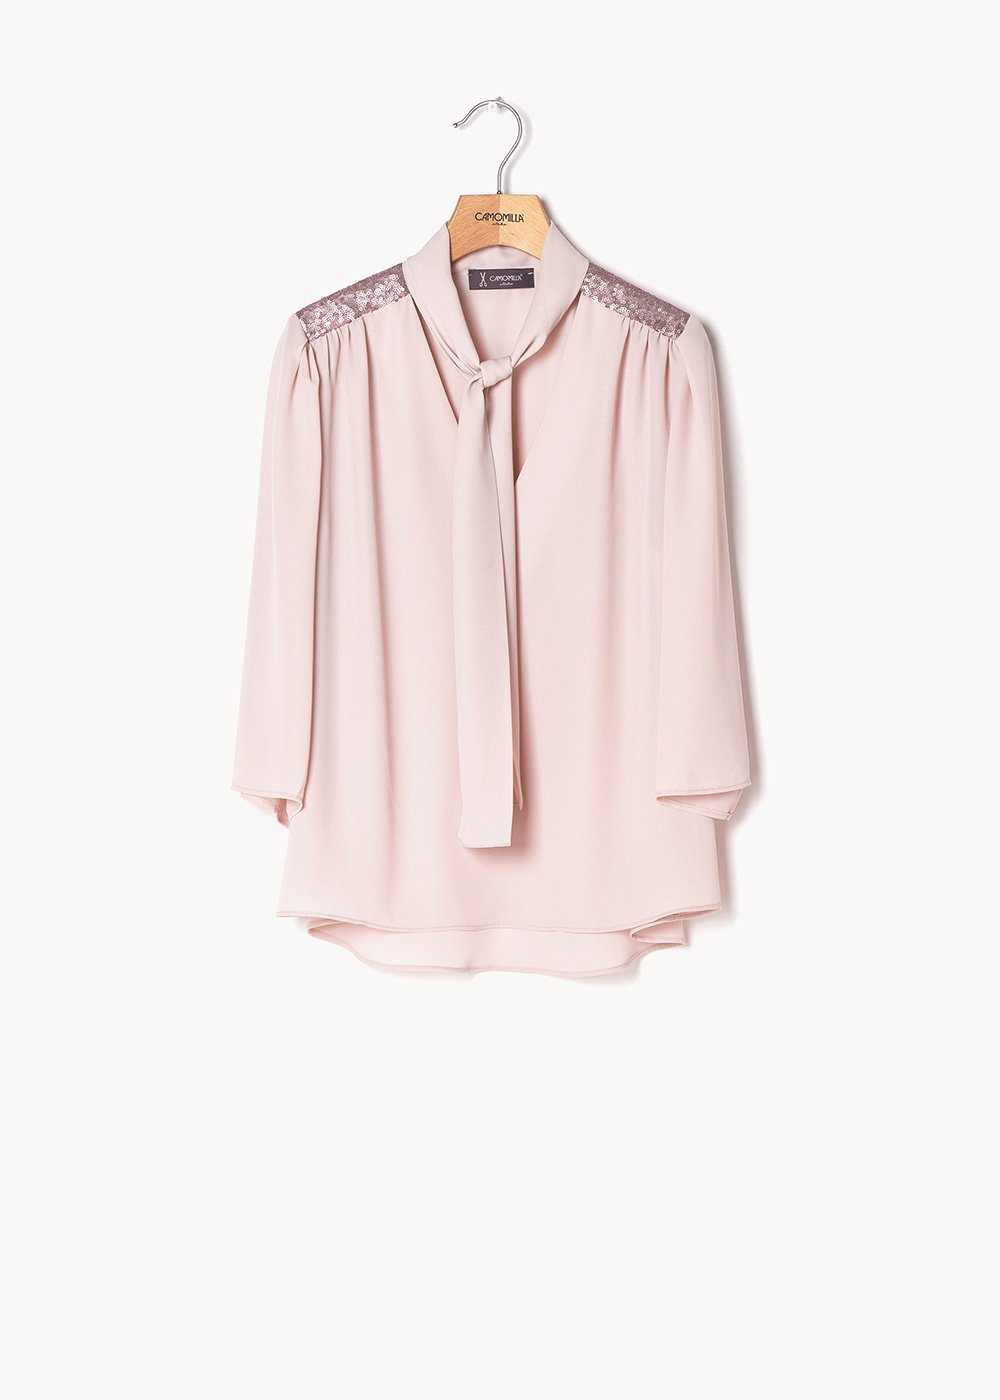 Criss blouse with sequins' inserts